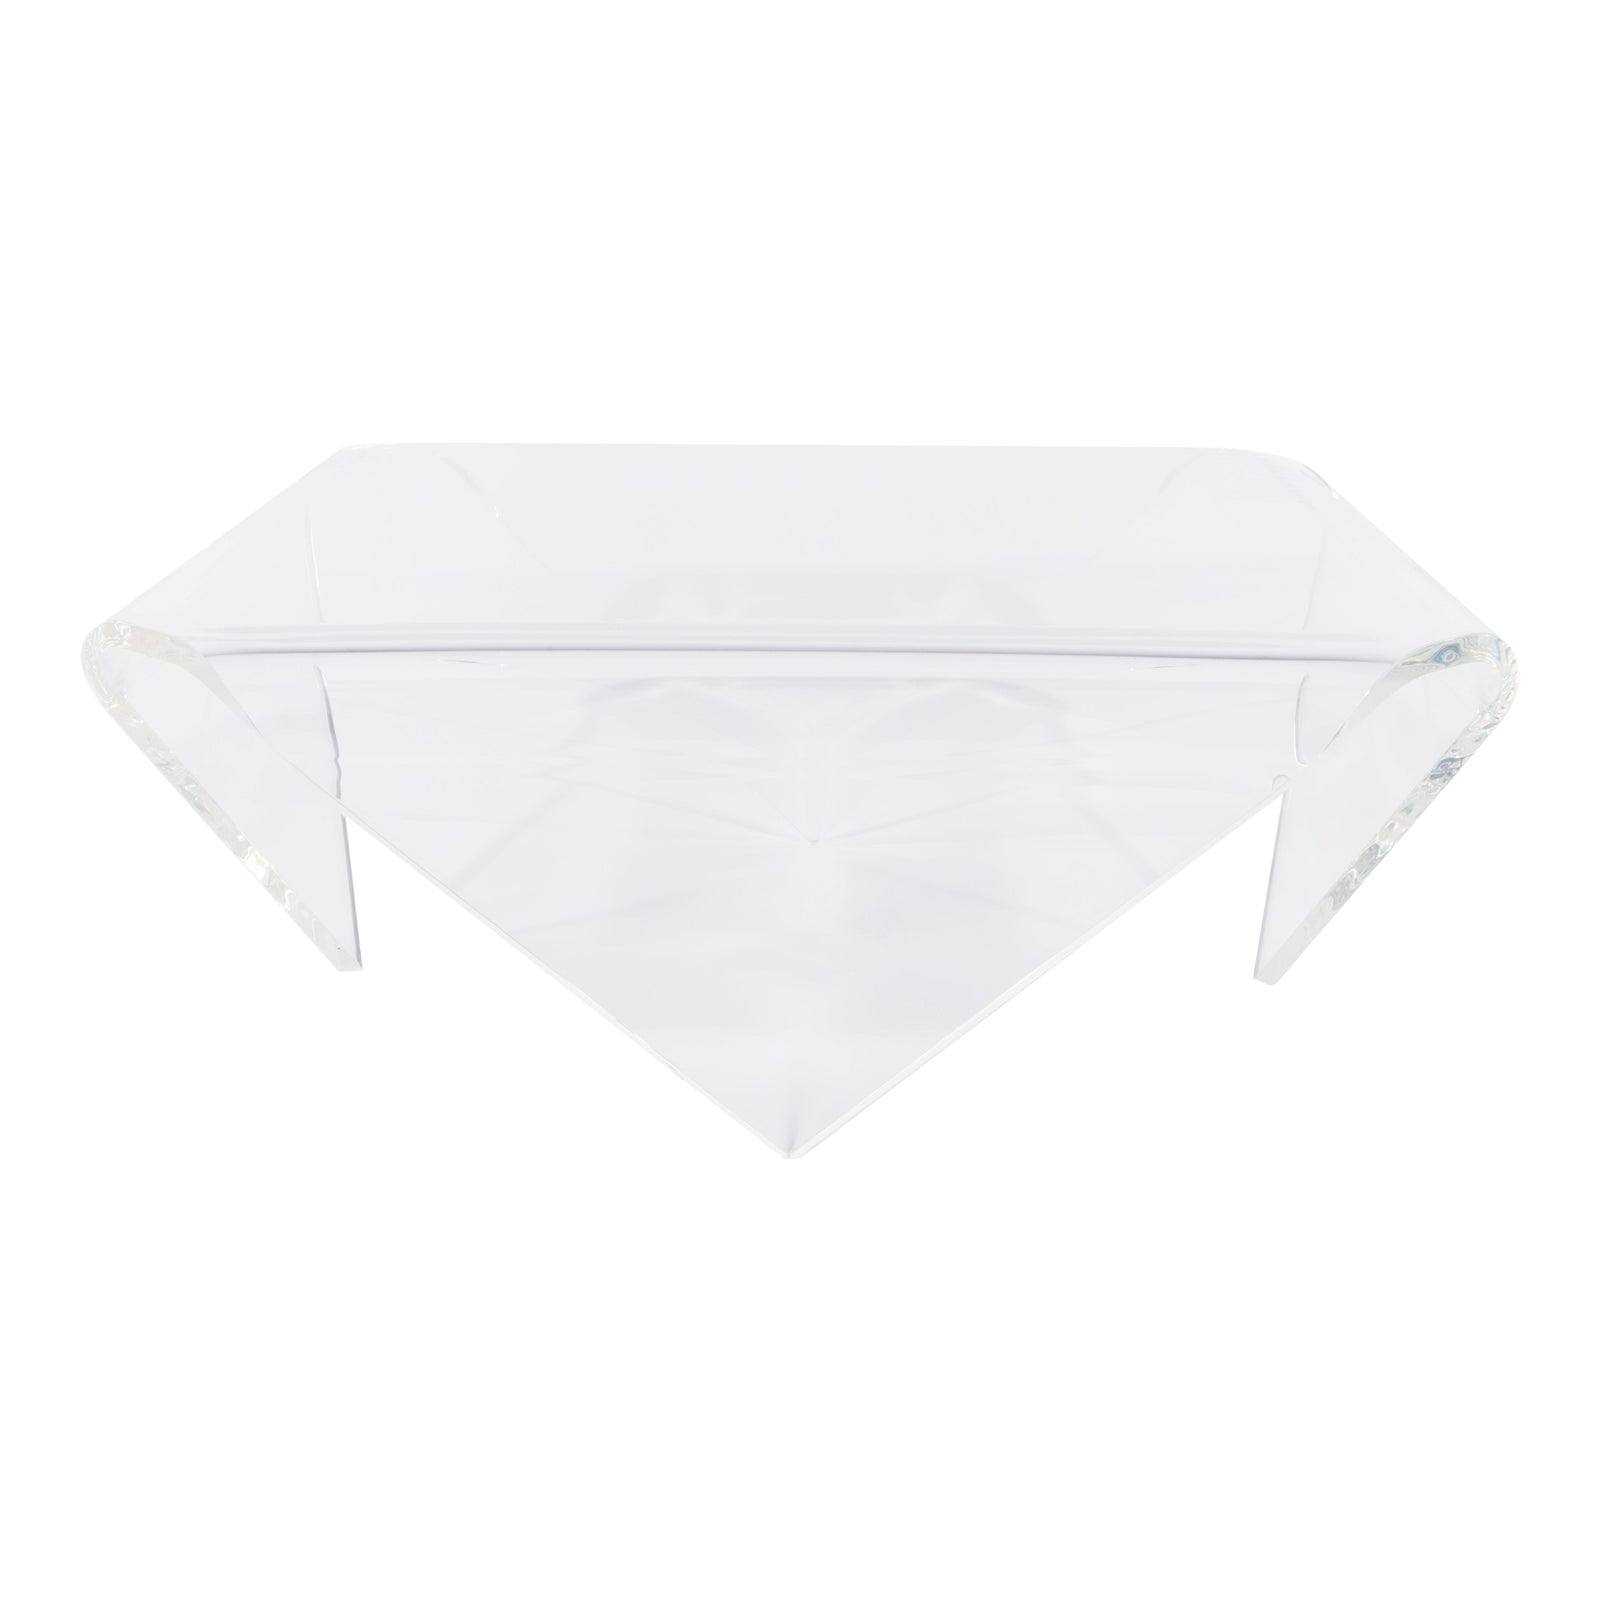 Exquisite Square Folded Acrylic Cocktail Table By John Harris, Circa